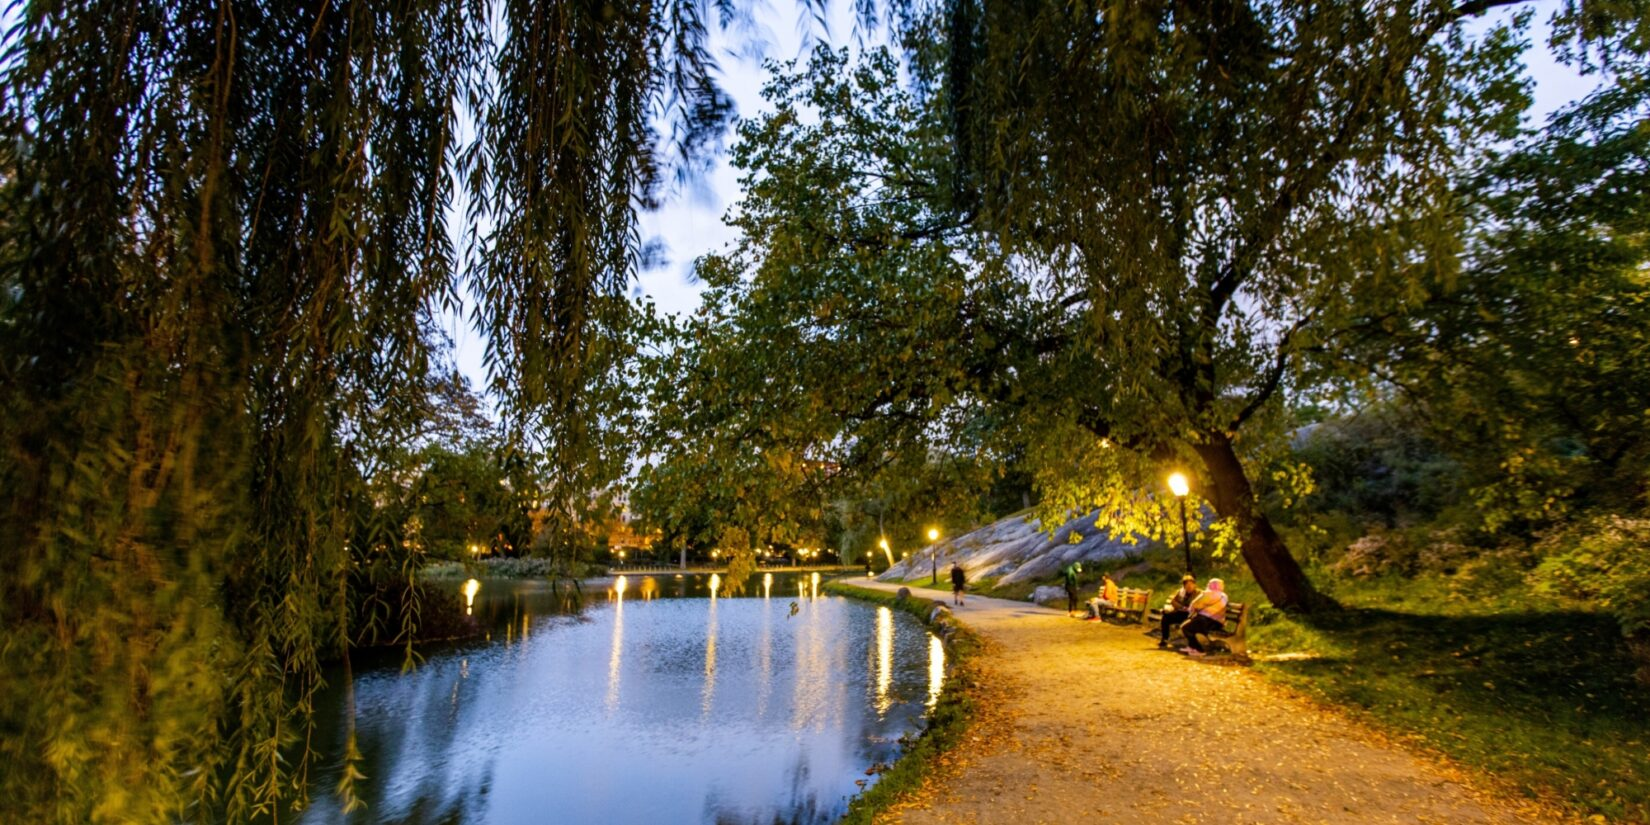 A couple sits on a bench on the winding banks of the Harlem Meer in twilight